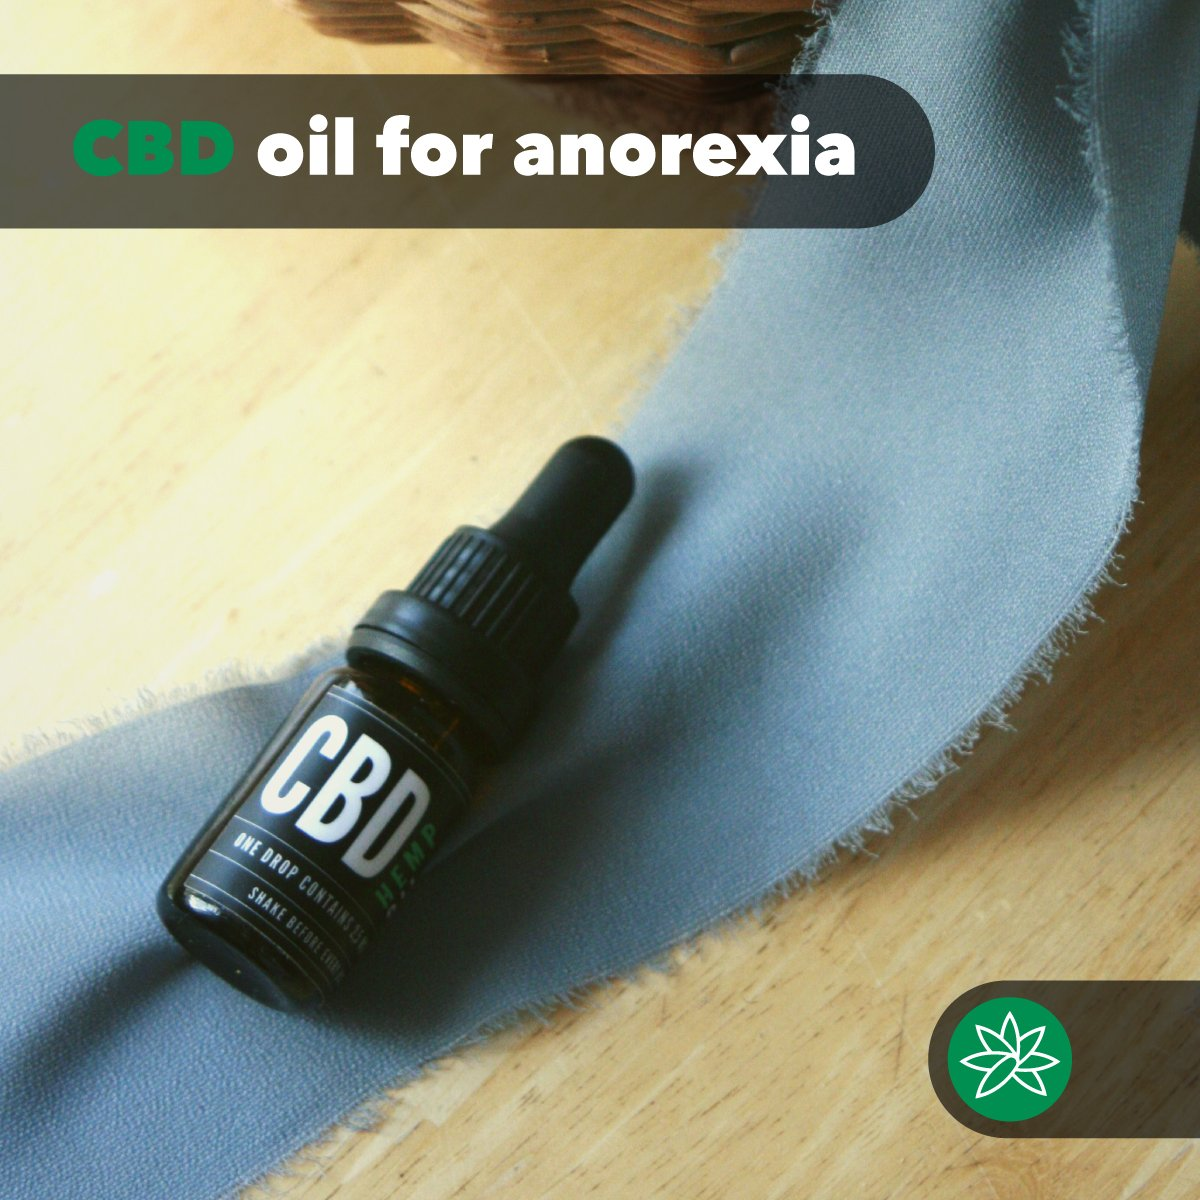 GWEE CBD oil for anorexia